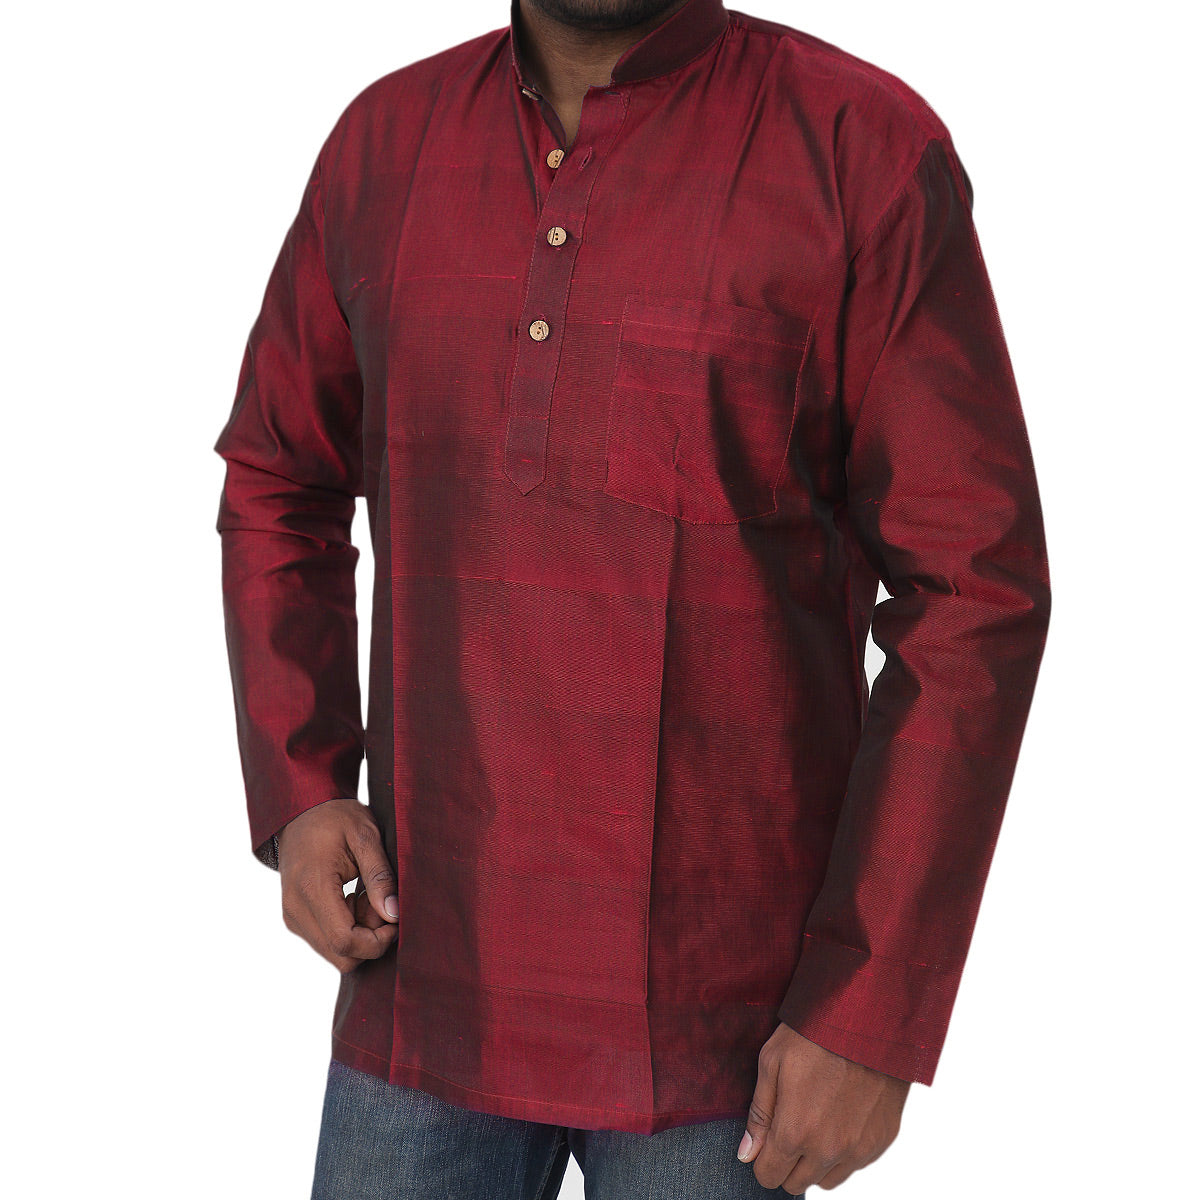 Mens Short Silk Cotton Kurta Maroon for Rs.Rs. 1950.00 | Mens Kurta by Prashanti Sarees